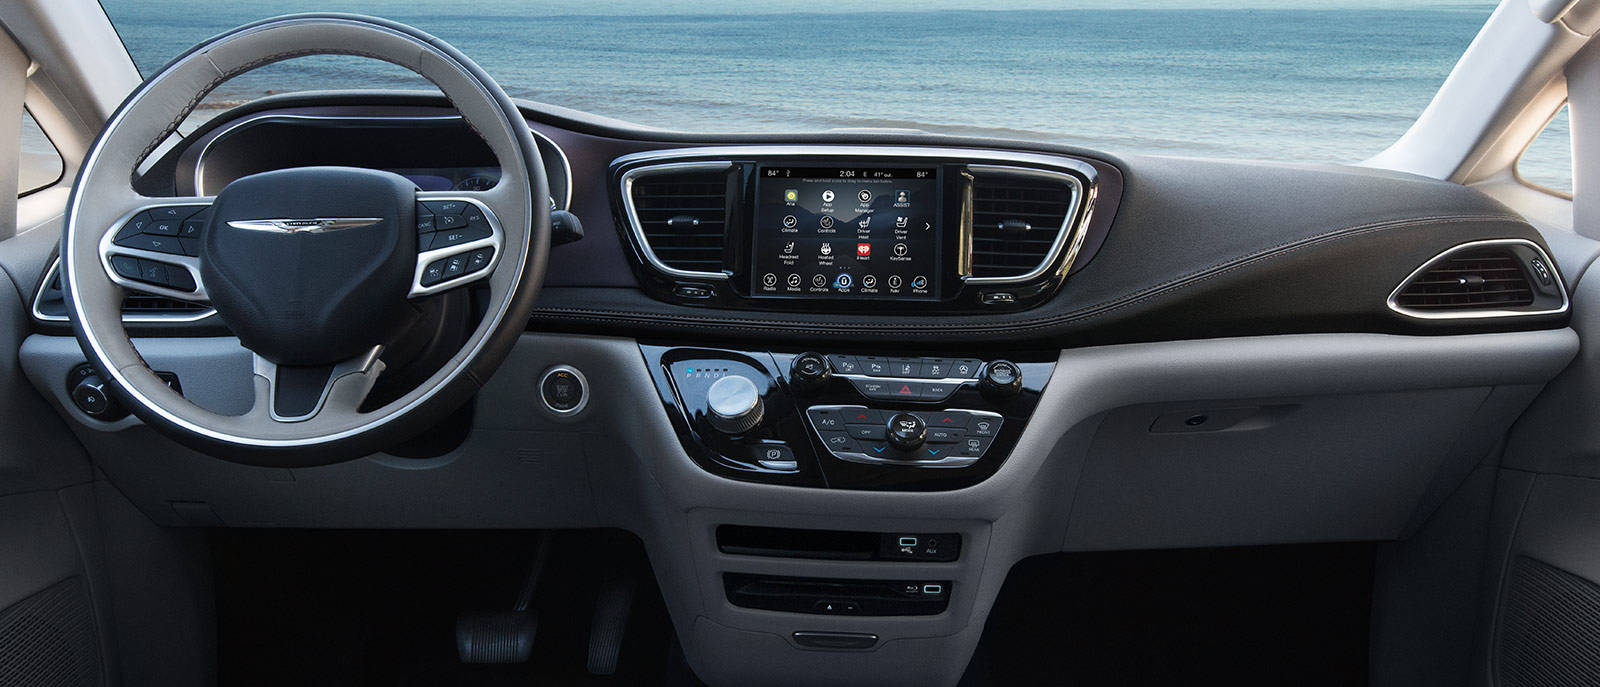 Interior Dashboard Pacifica